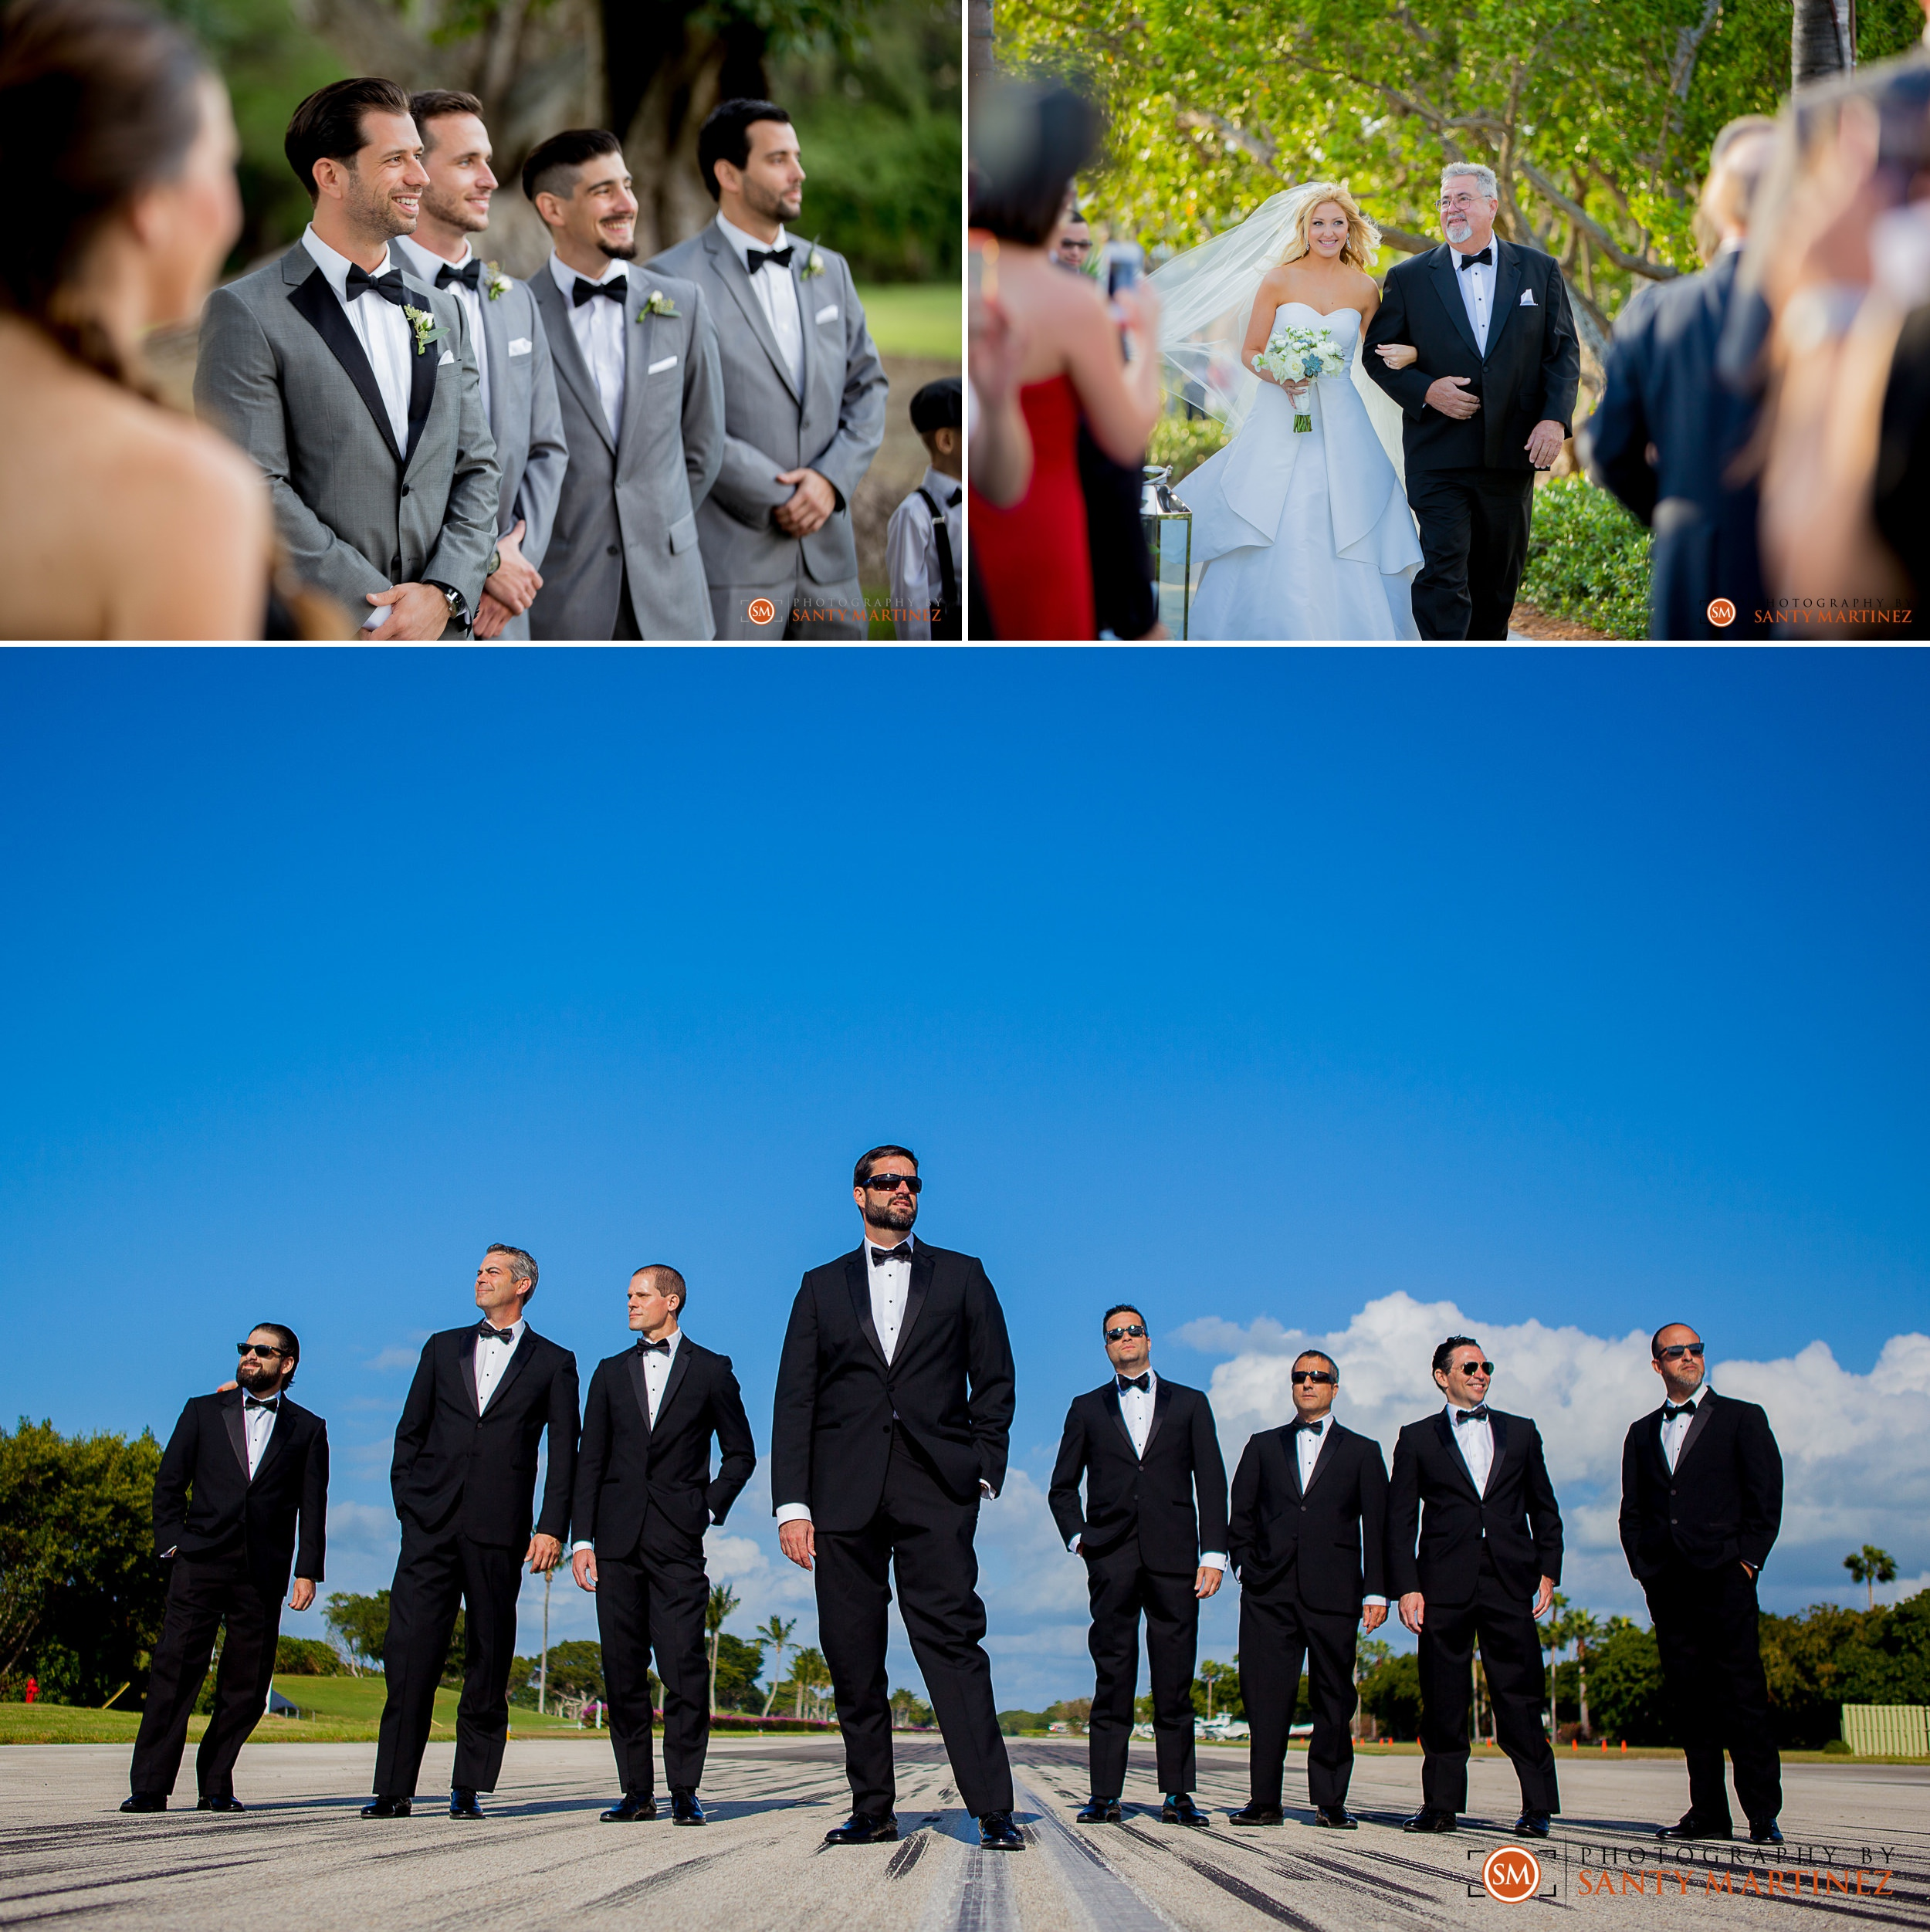 Santy Martinez - Photography - Miami Wedding Photographers 9.jpg